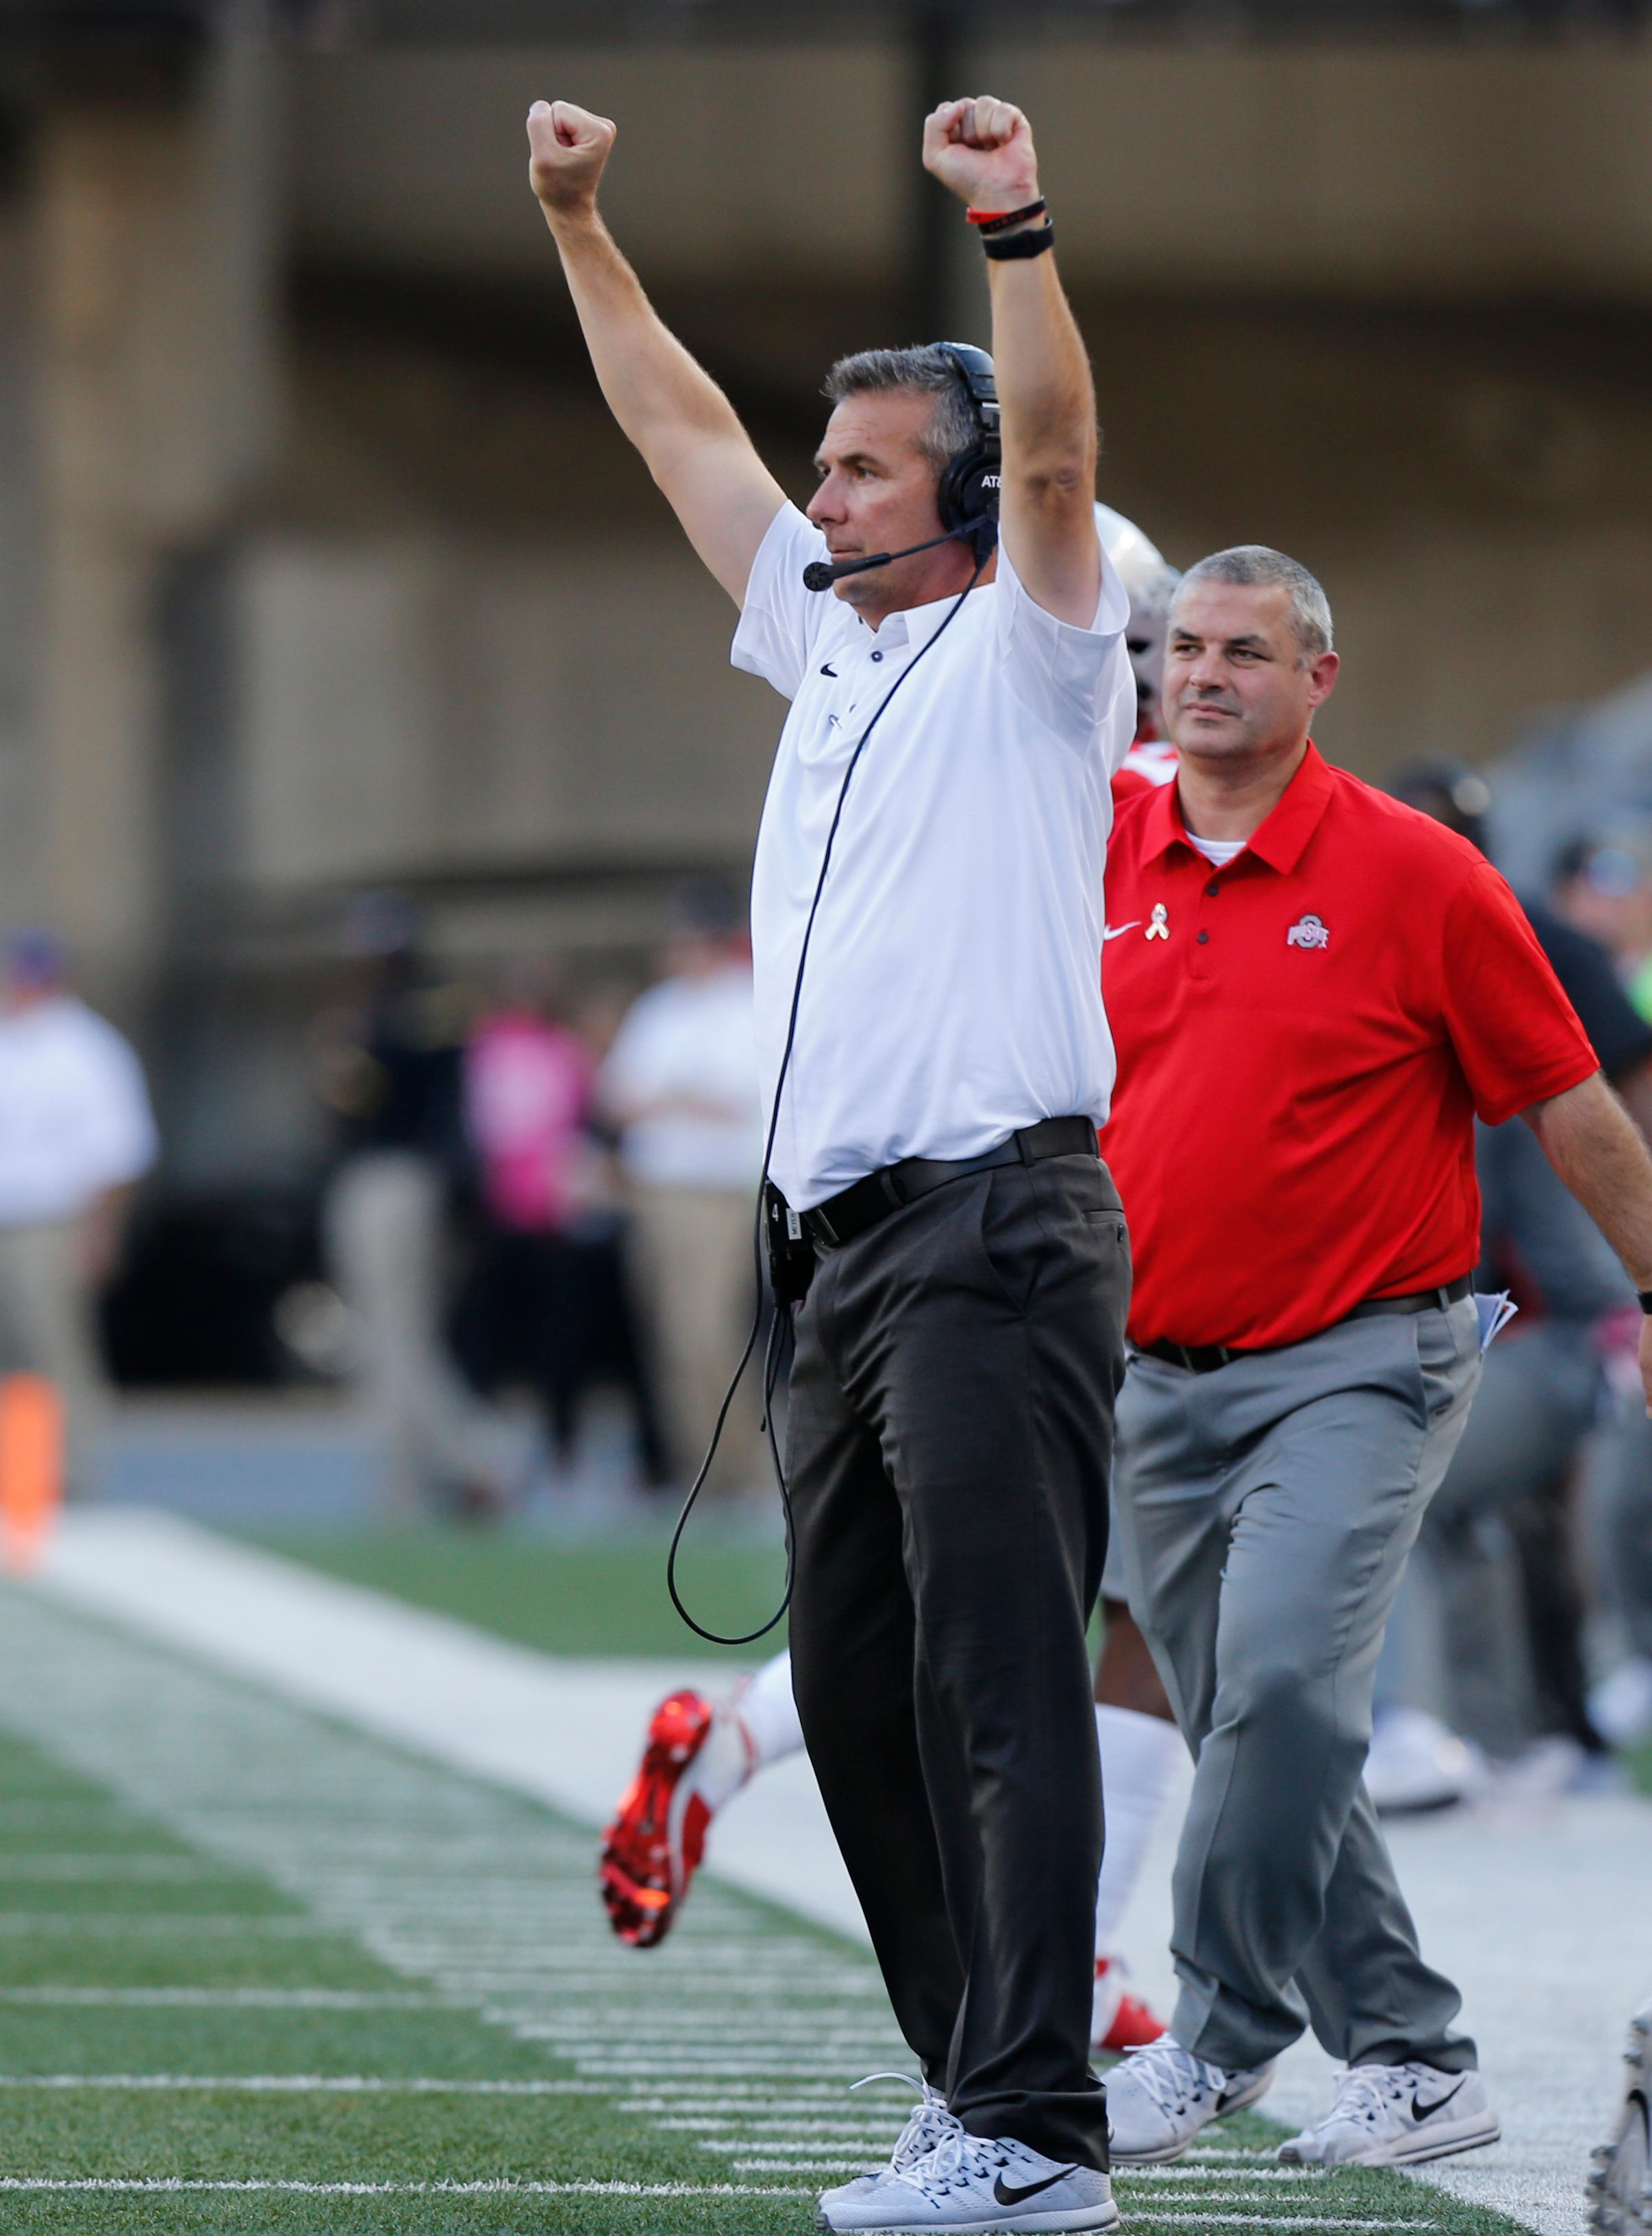 Ohio State head coach Urban Meyer celebrates a touchdown against Maryland during the first half of an NCAA college football game Saturday, Oct. 7, 2017, in Columbus, Ohio. (AP Photo/Jay LaPrete)